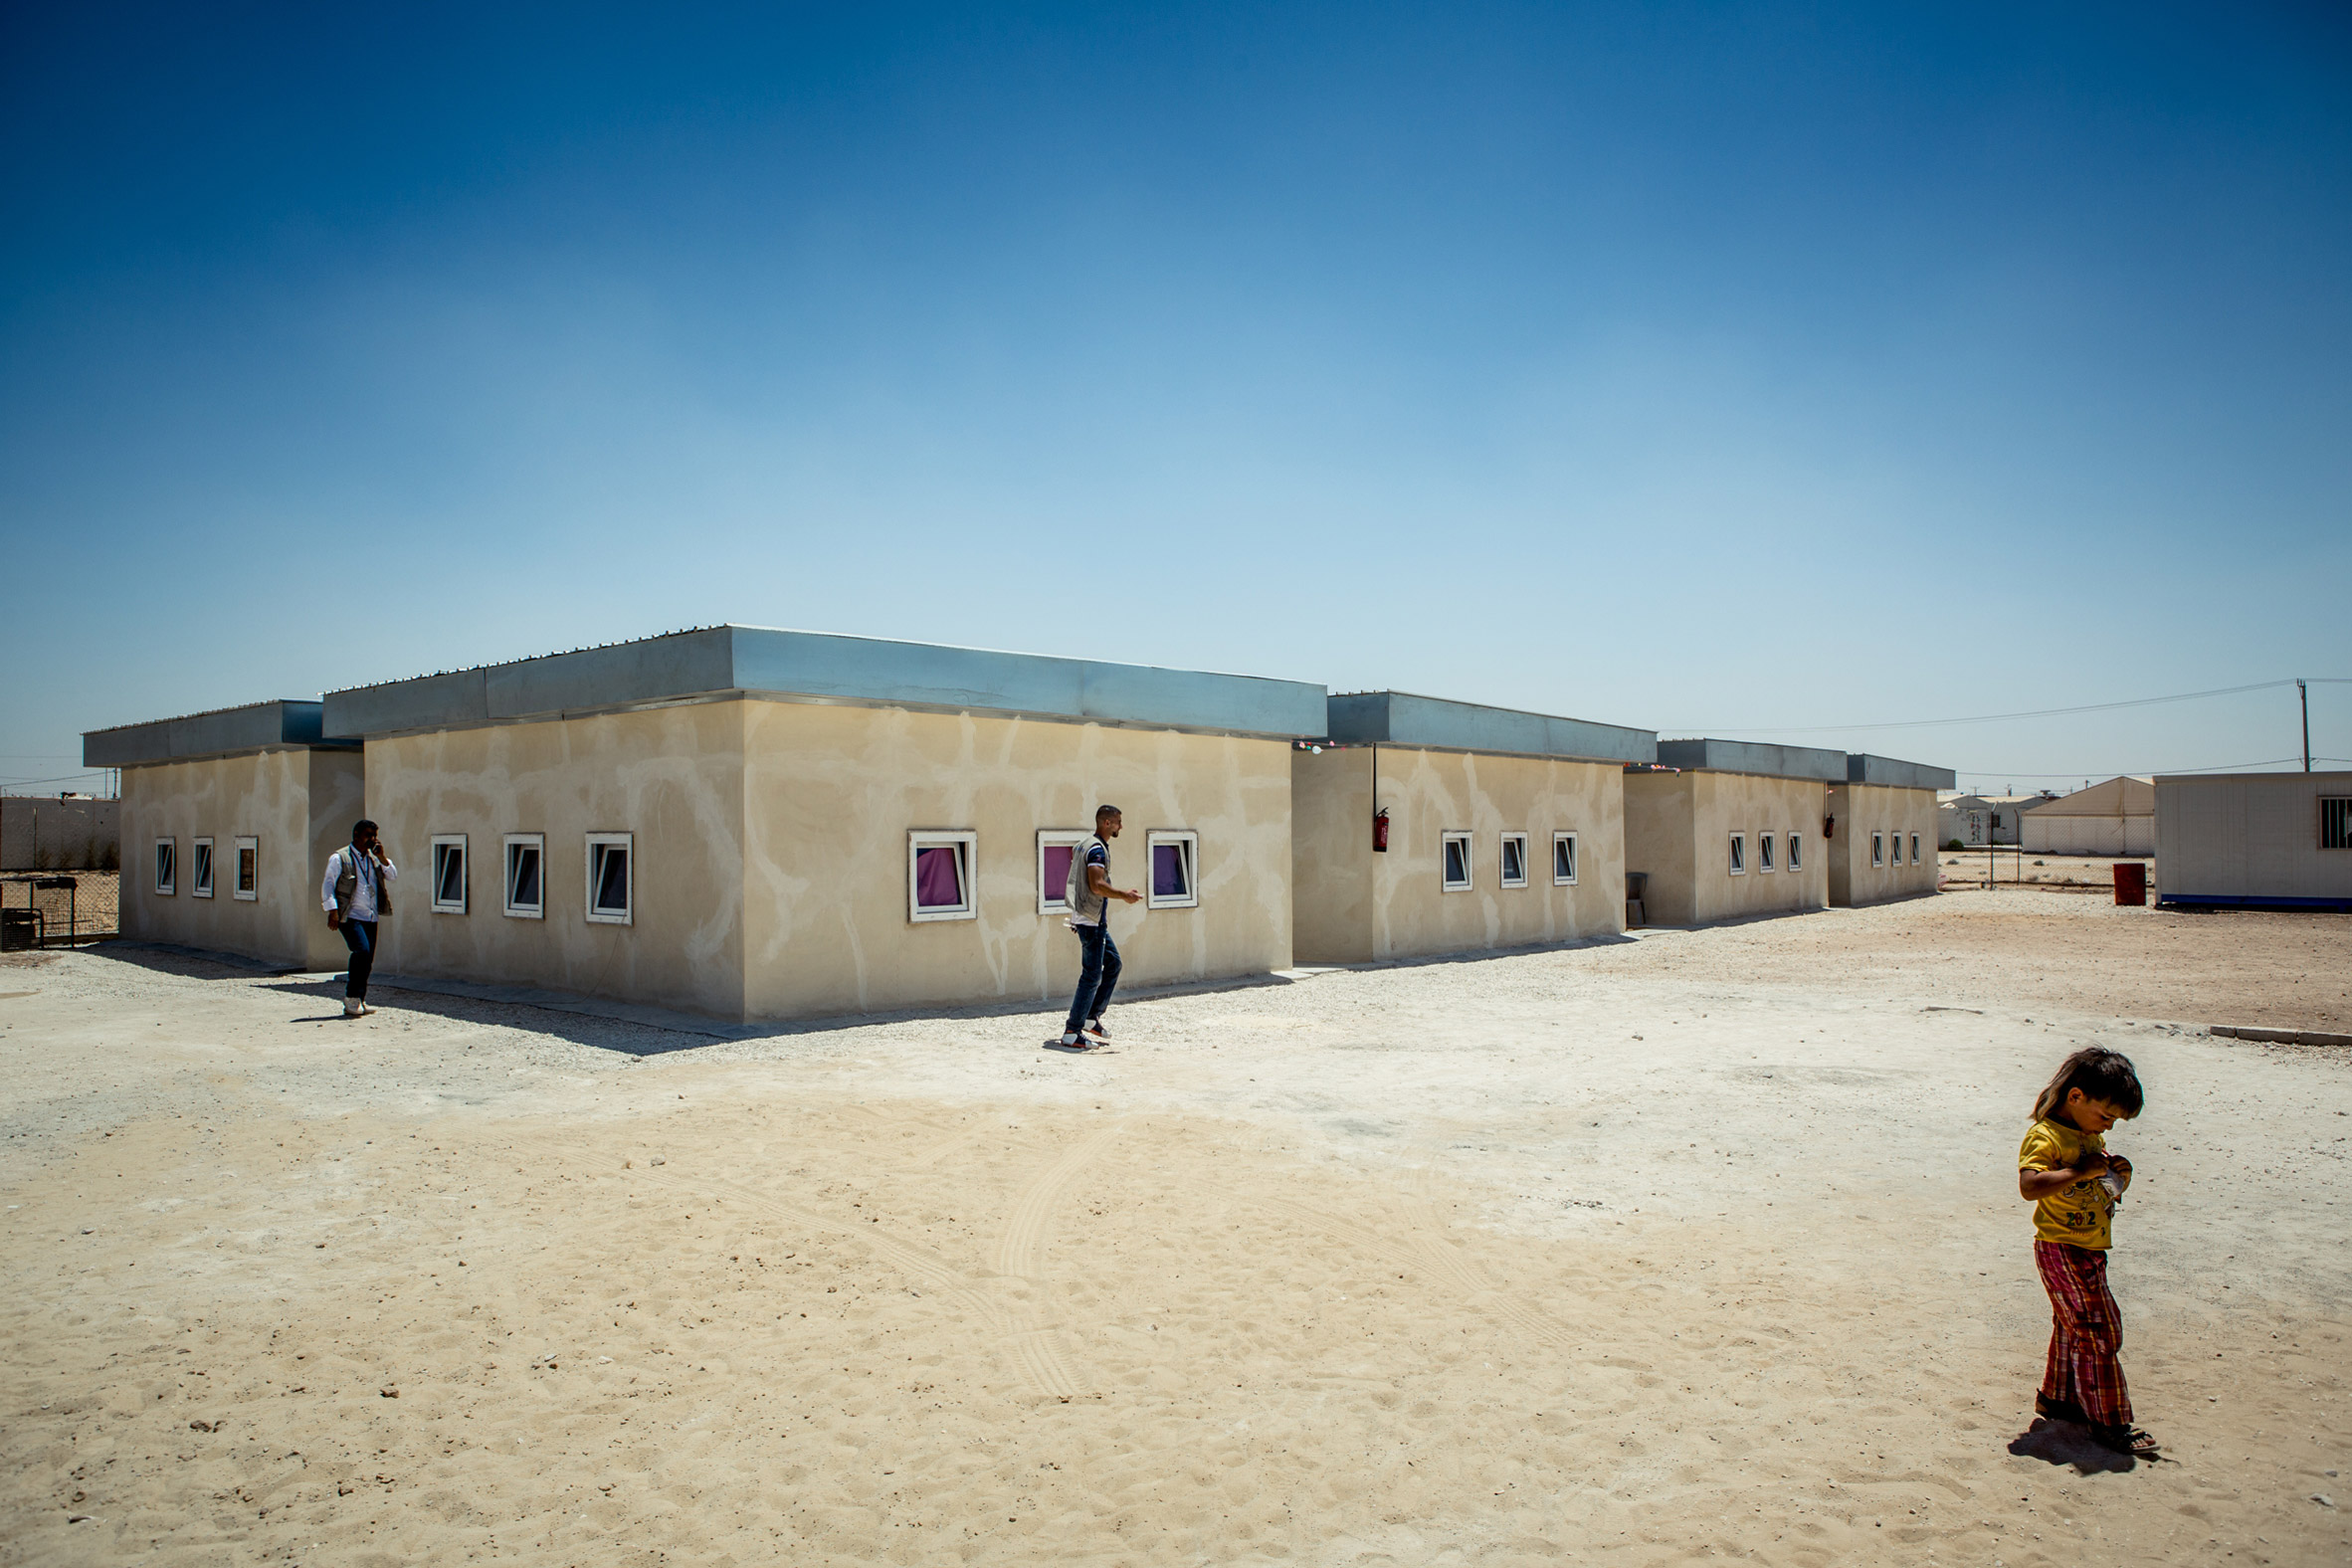 Low-cost school for 3,000 children planned at Syrian refugee camp in Jordan